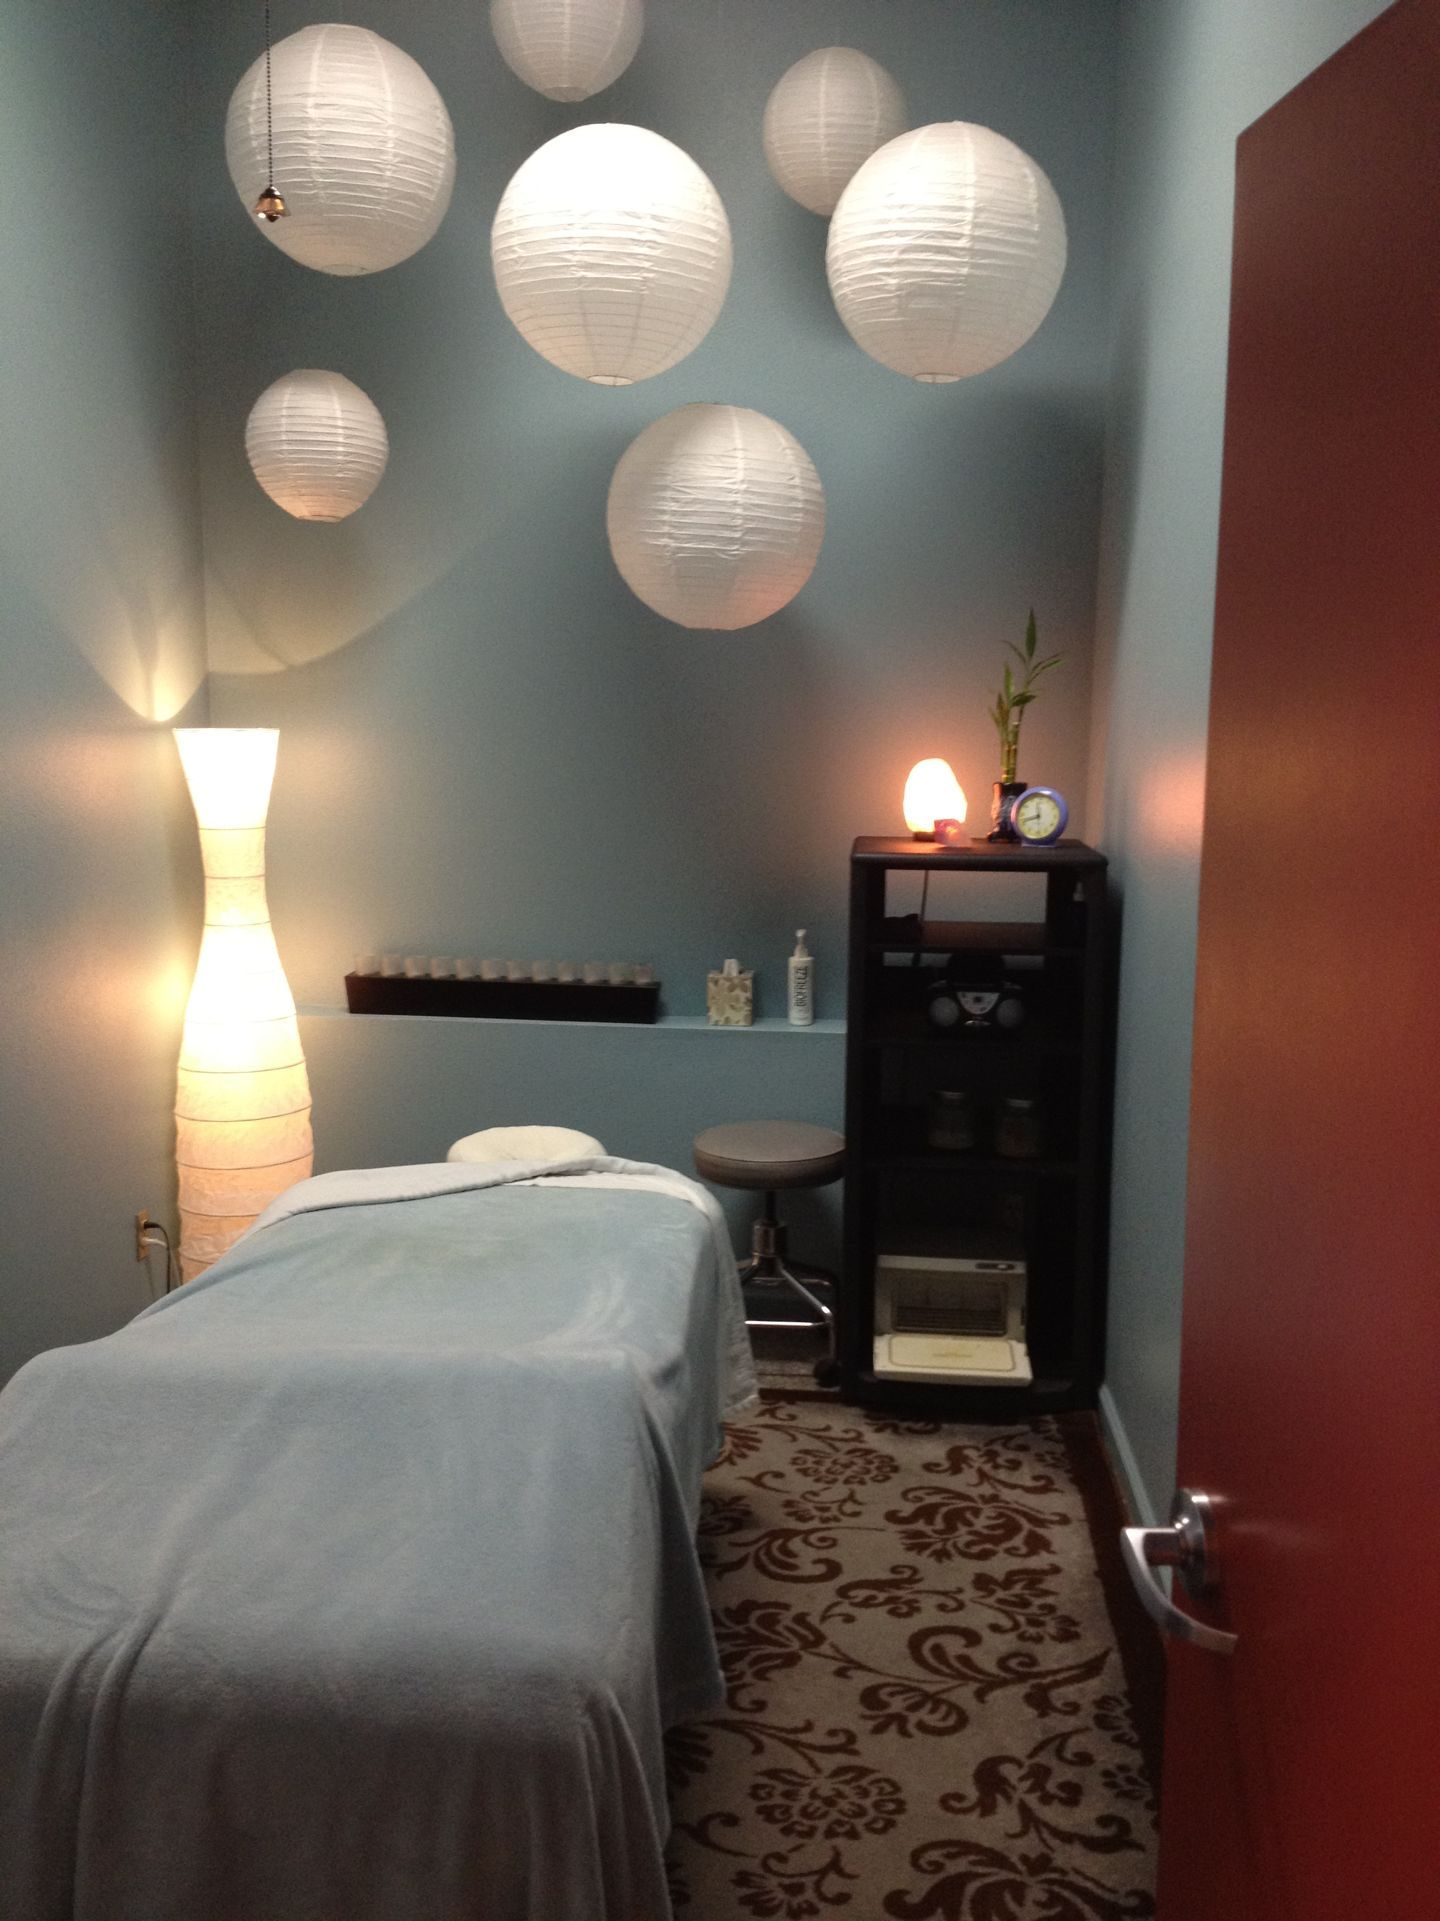 Massage Therapy Room Design Ideas: The Spa At Pacific Wellness Massage Therapy Room Www